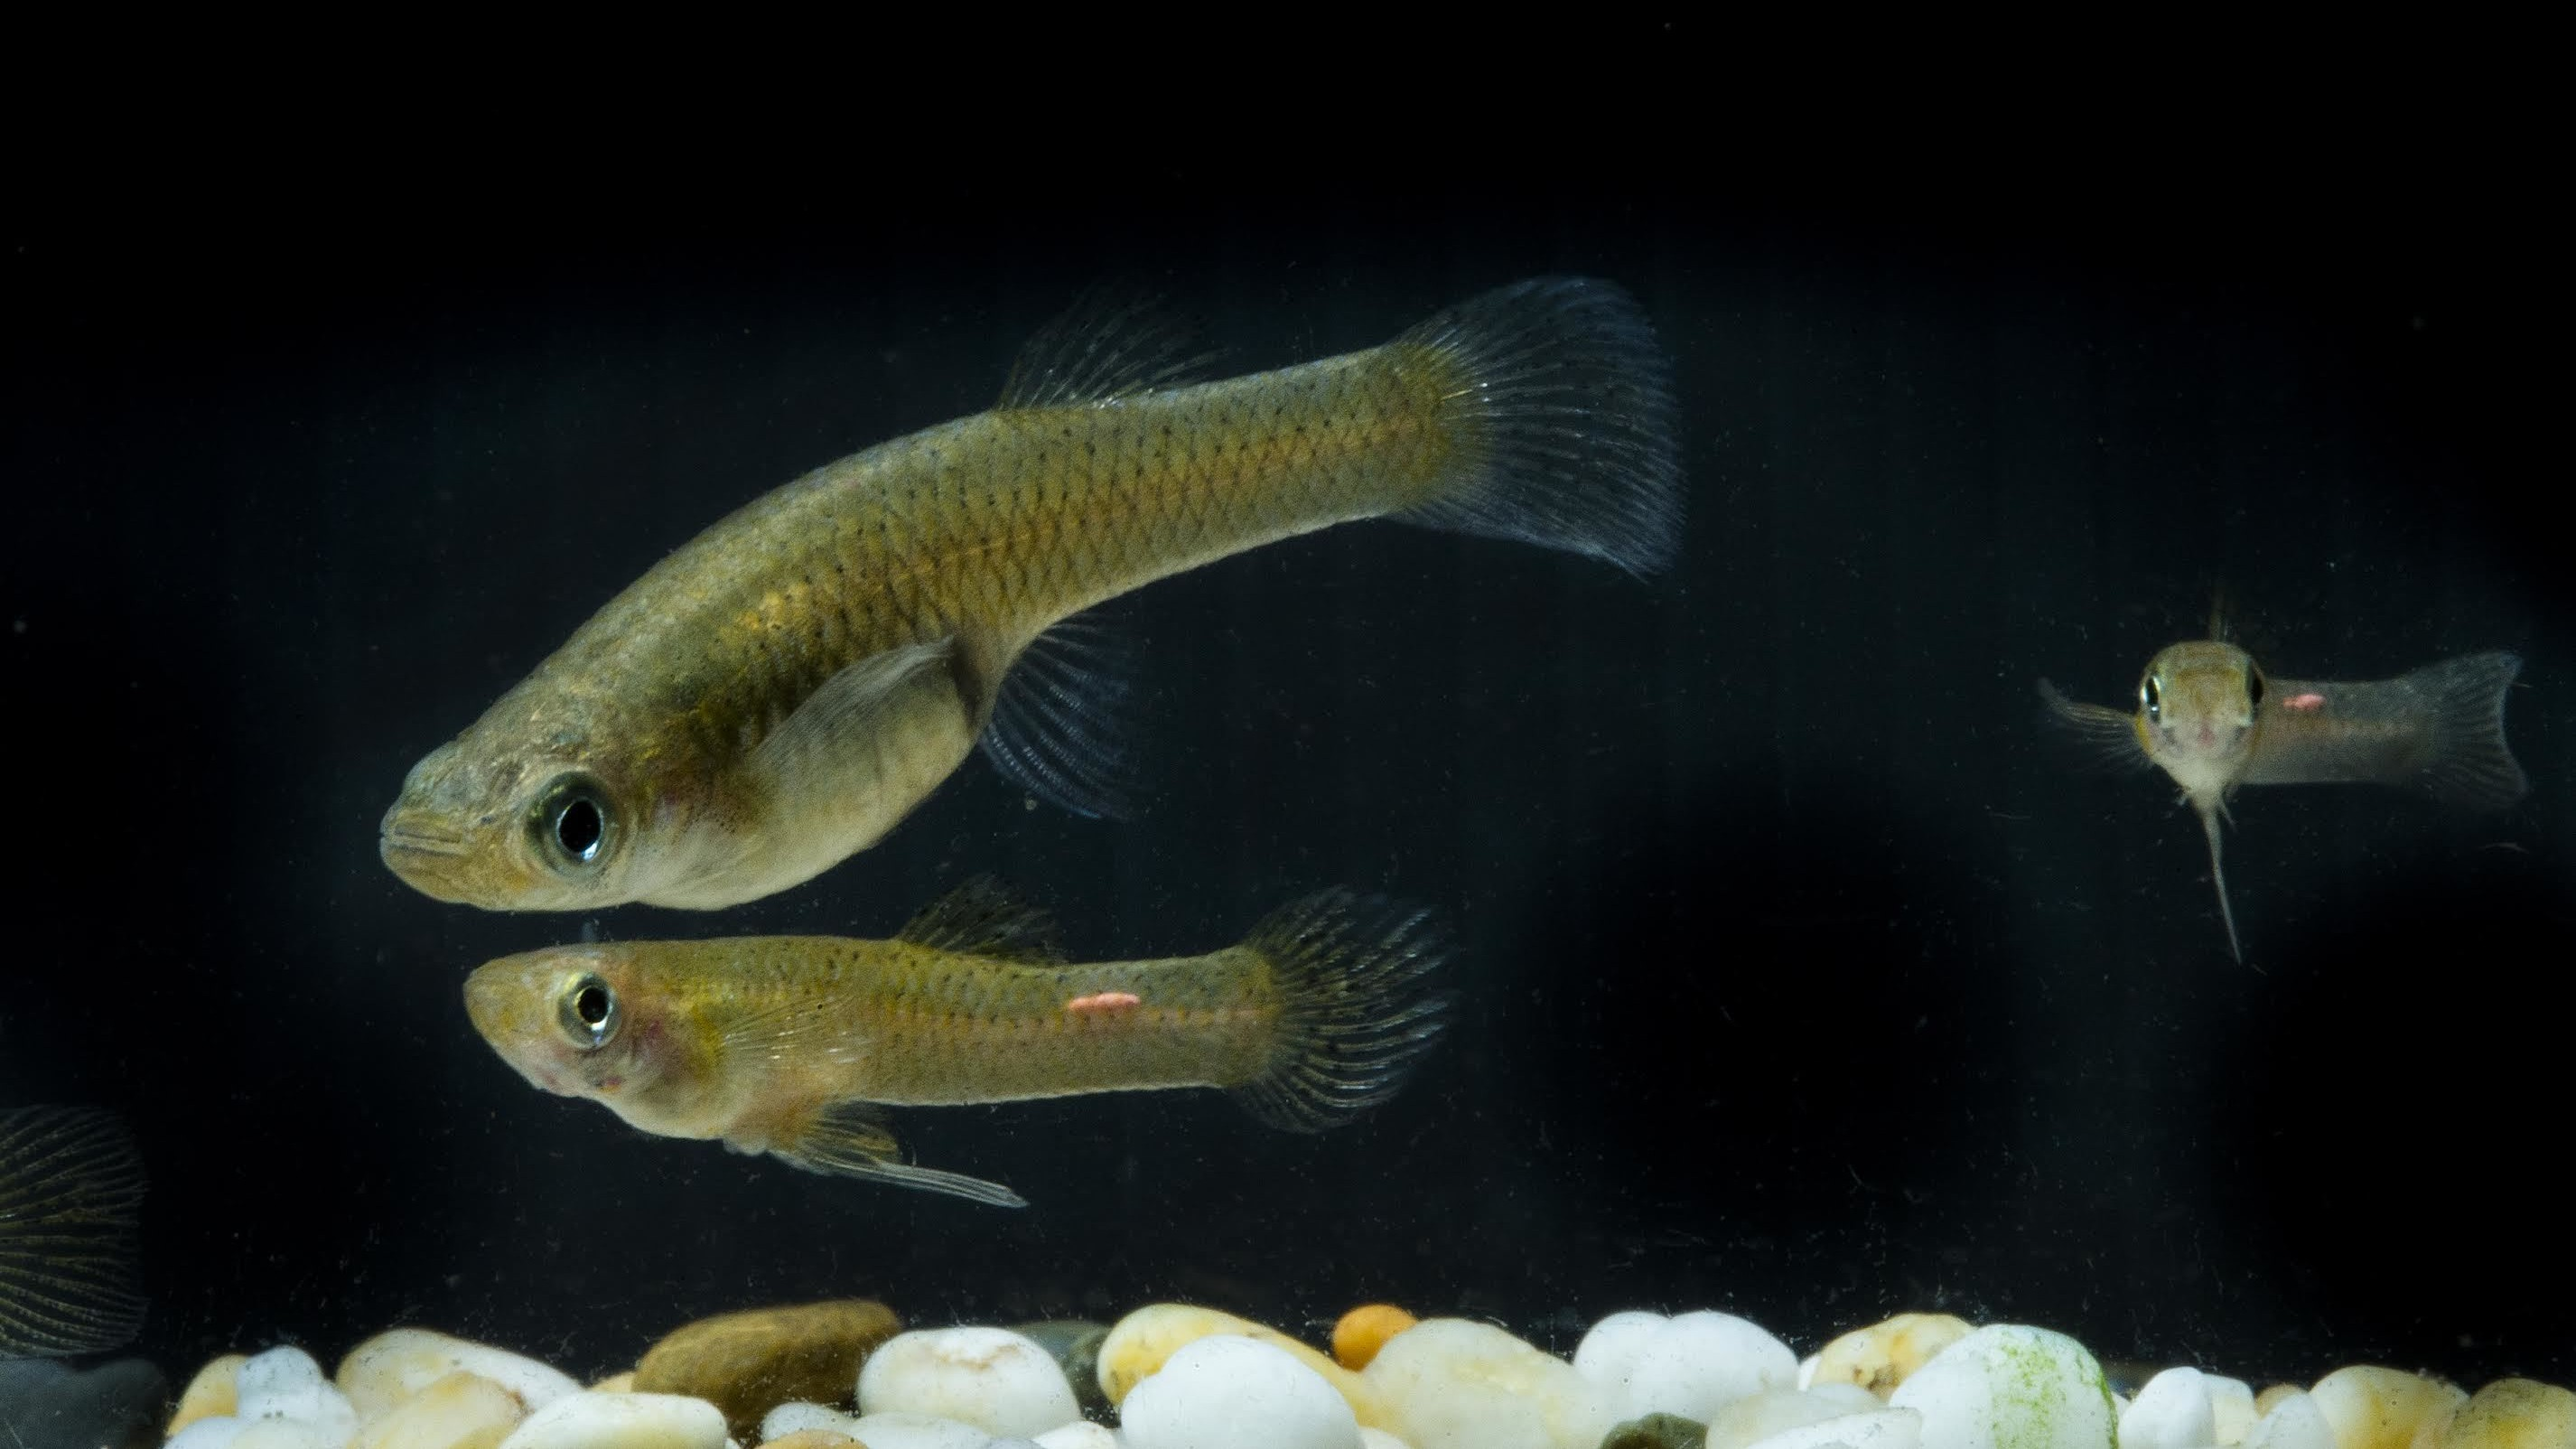 Female Fish Grow Bigger Brains to Outsmart Horny Males, Researchers Say